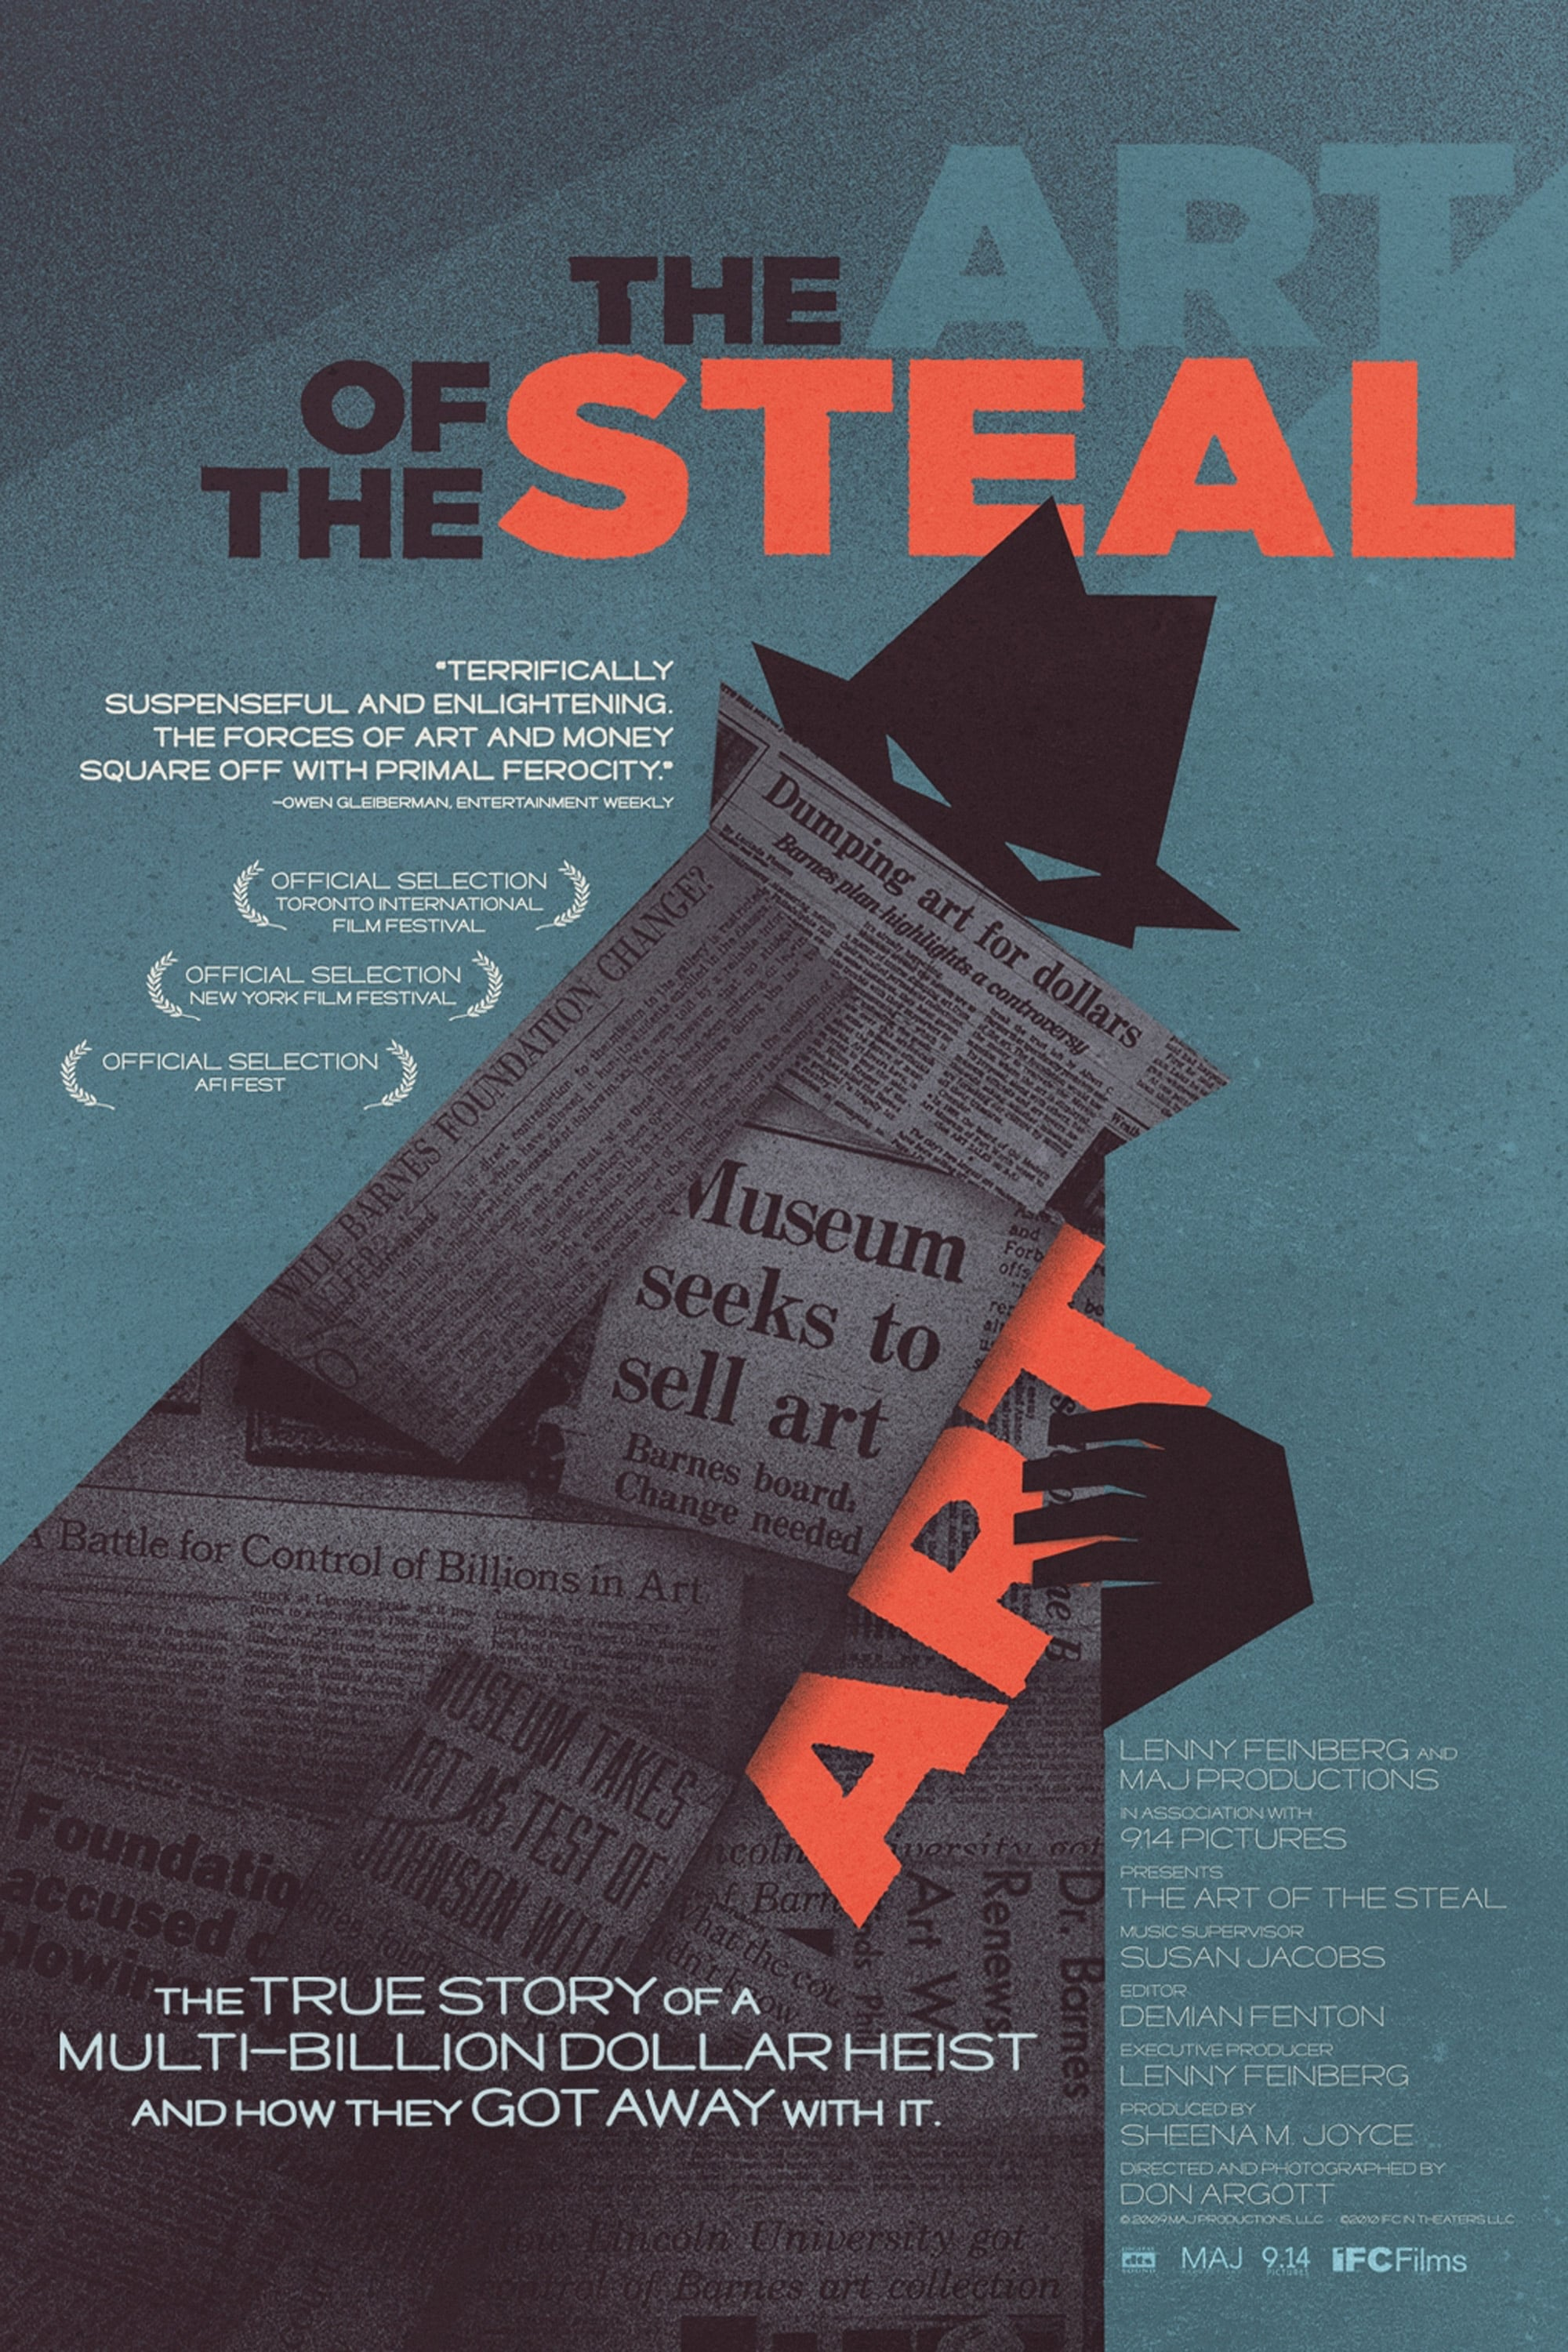 The Art of the Steal (2010)